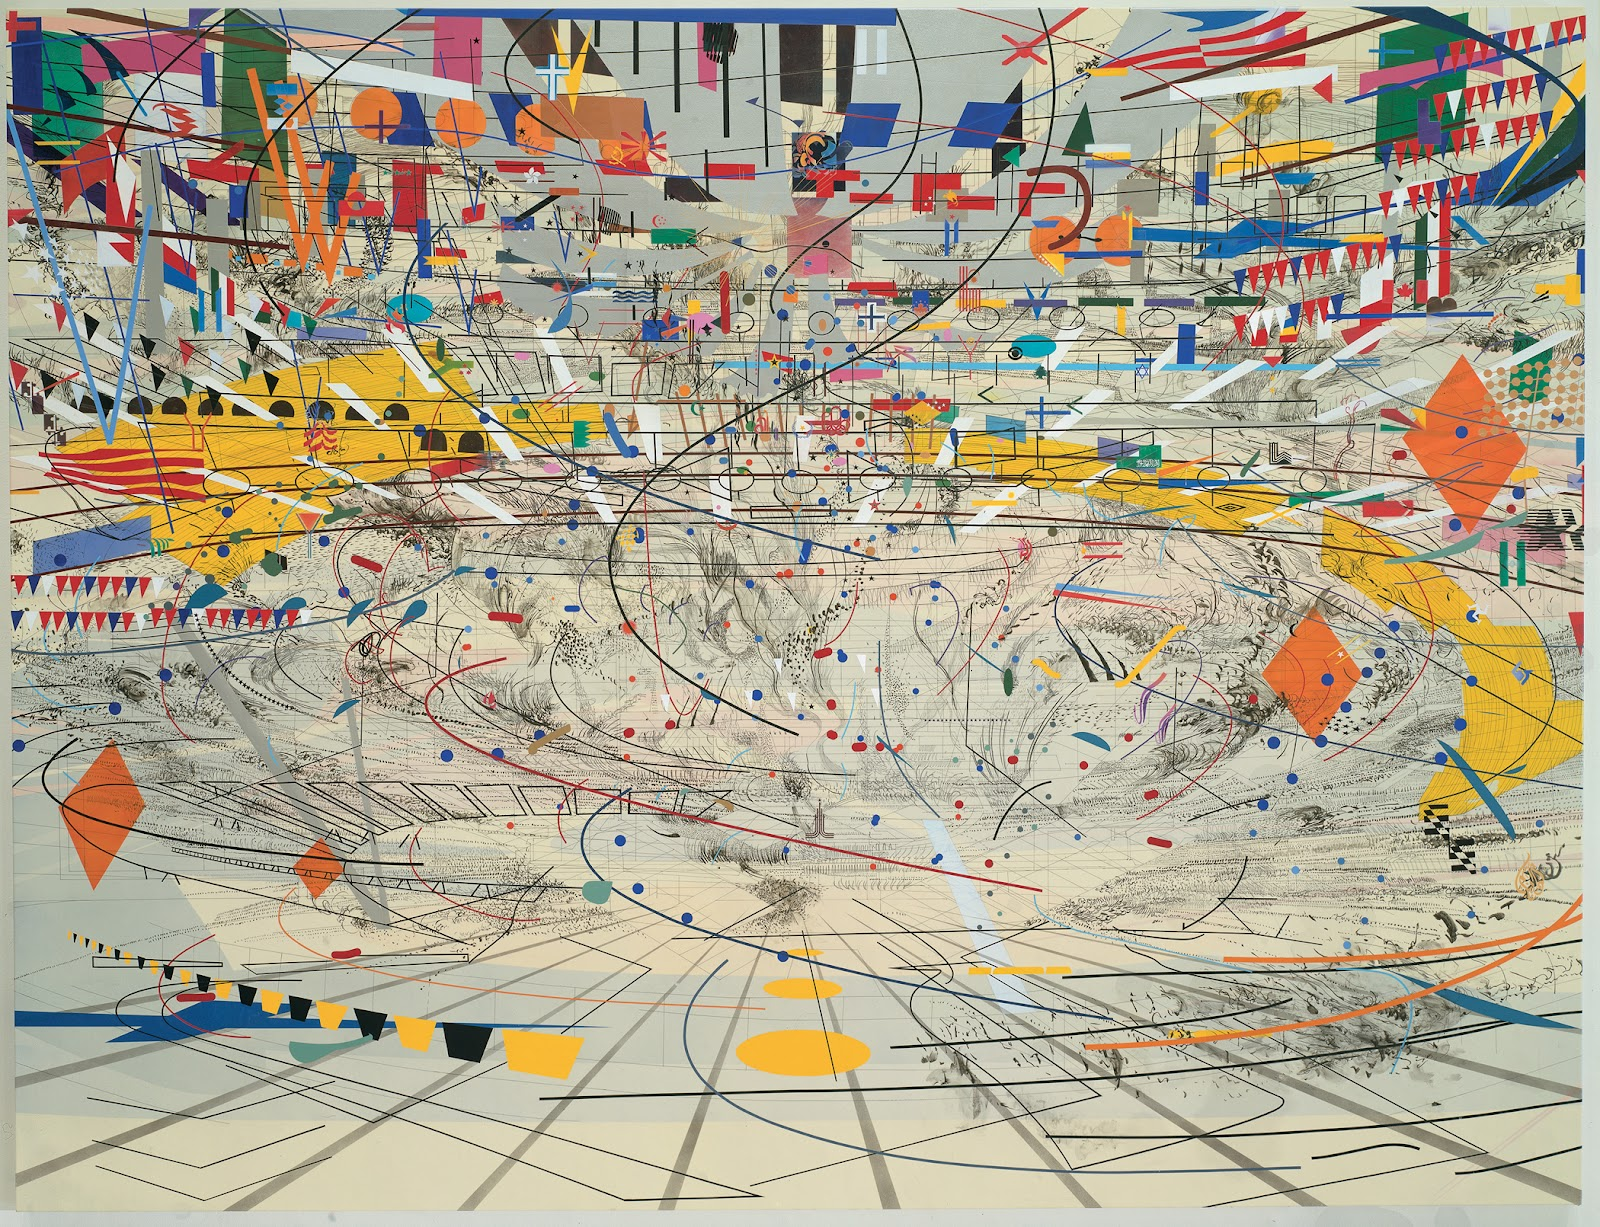 Stadia II - Julie Mehretu (2004), ink and acrylic on canvas